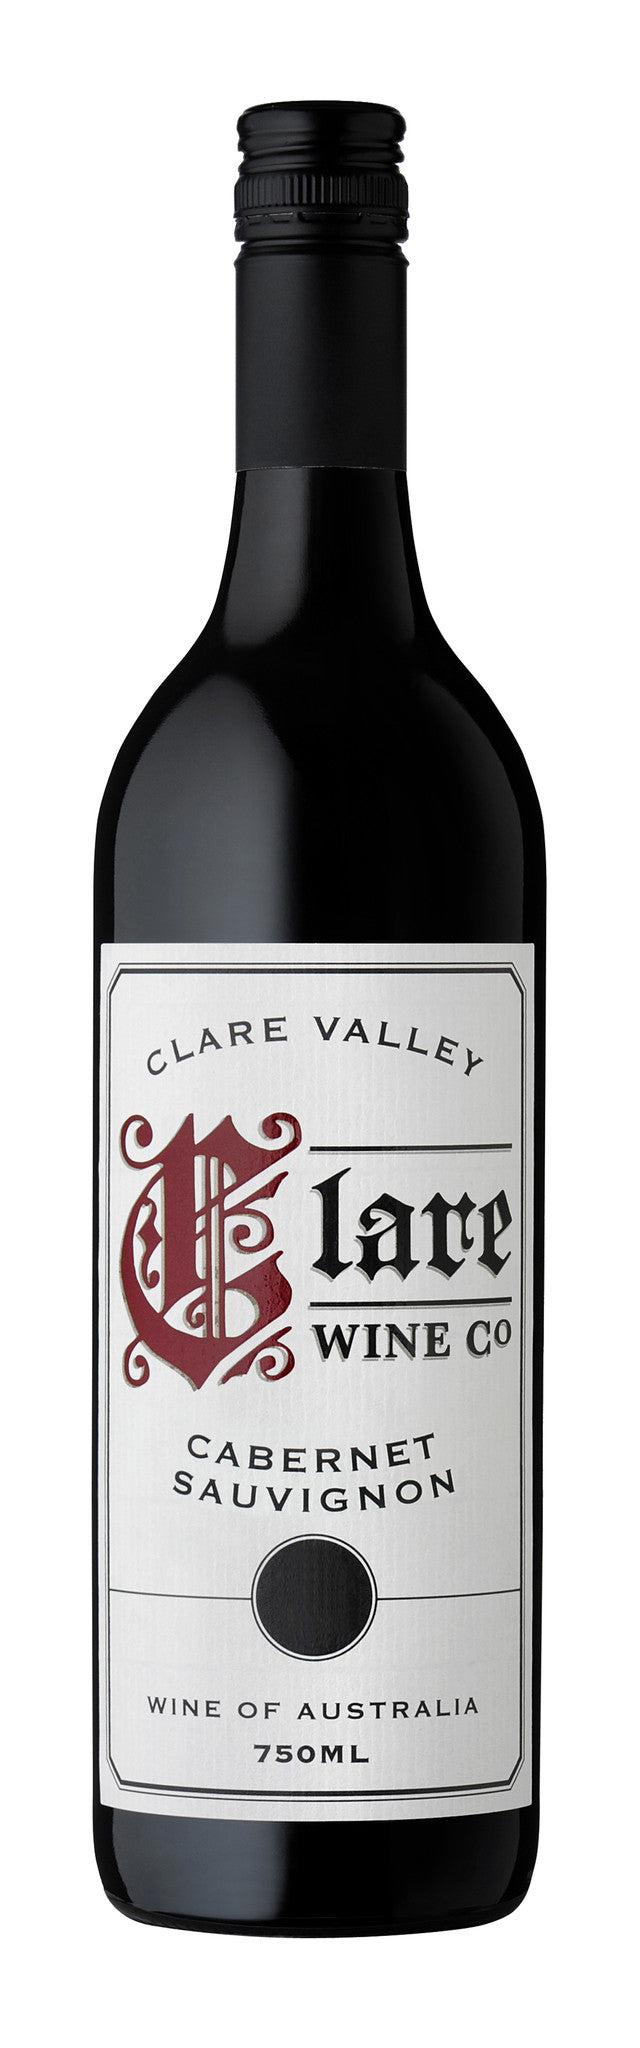 CLARE VALLEY WINE CO CABERNET SAUVIGNON